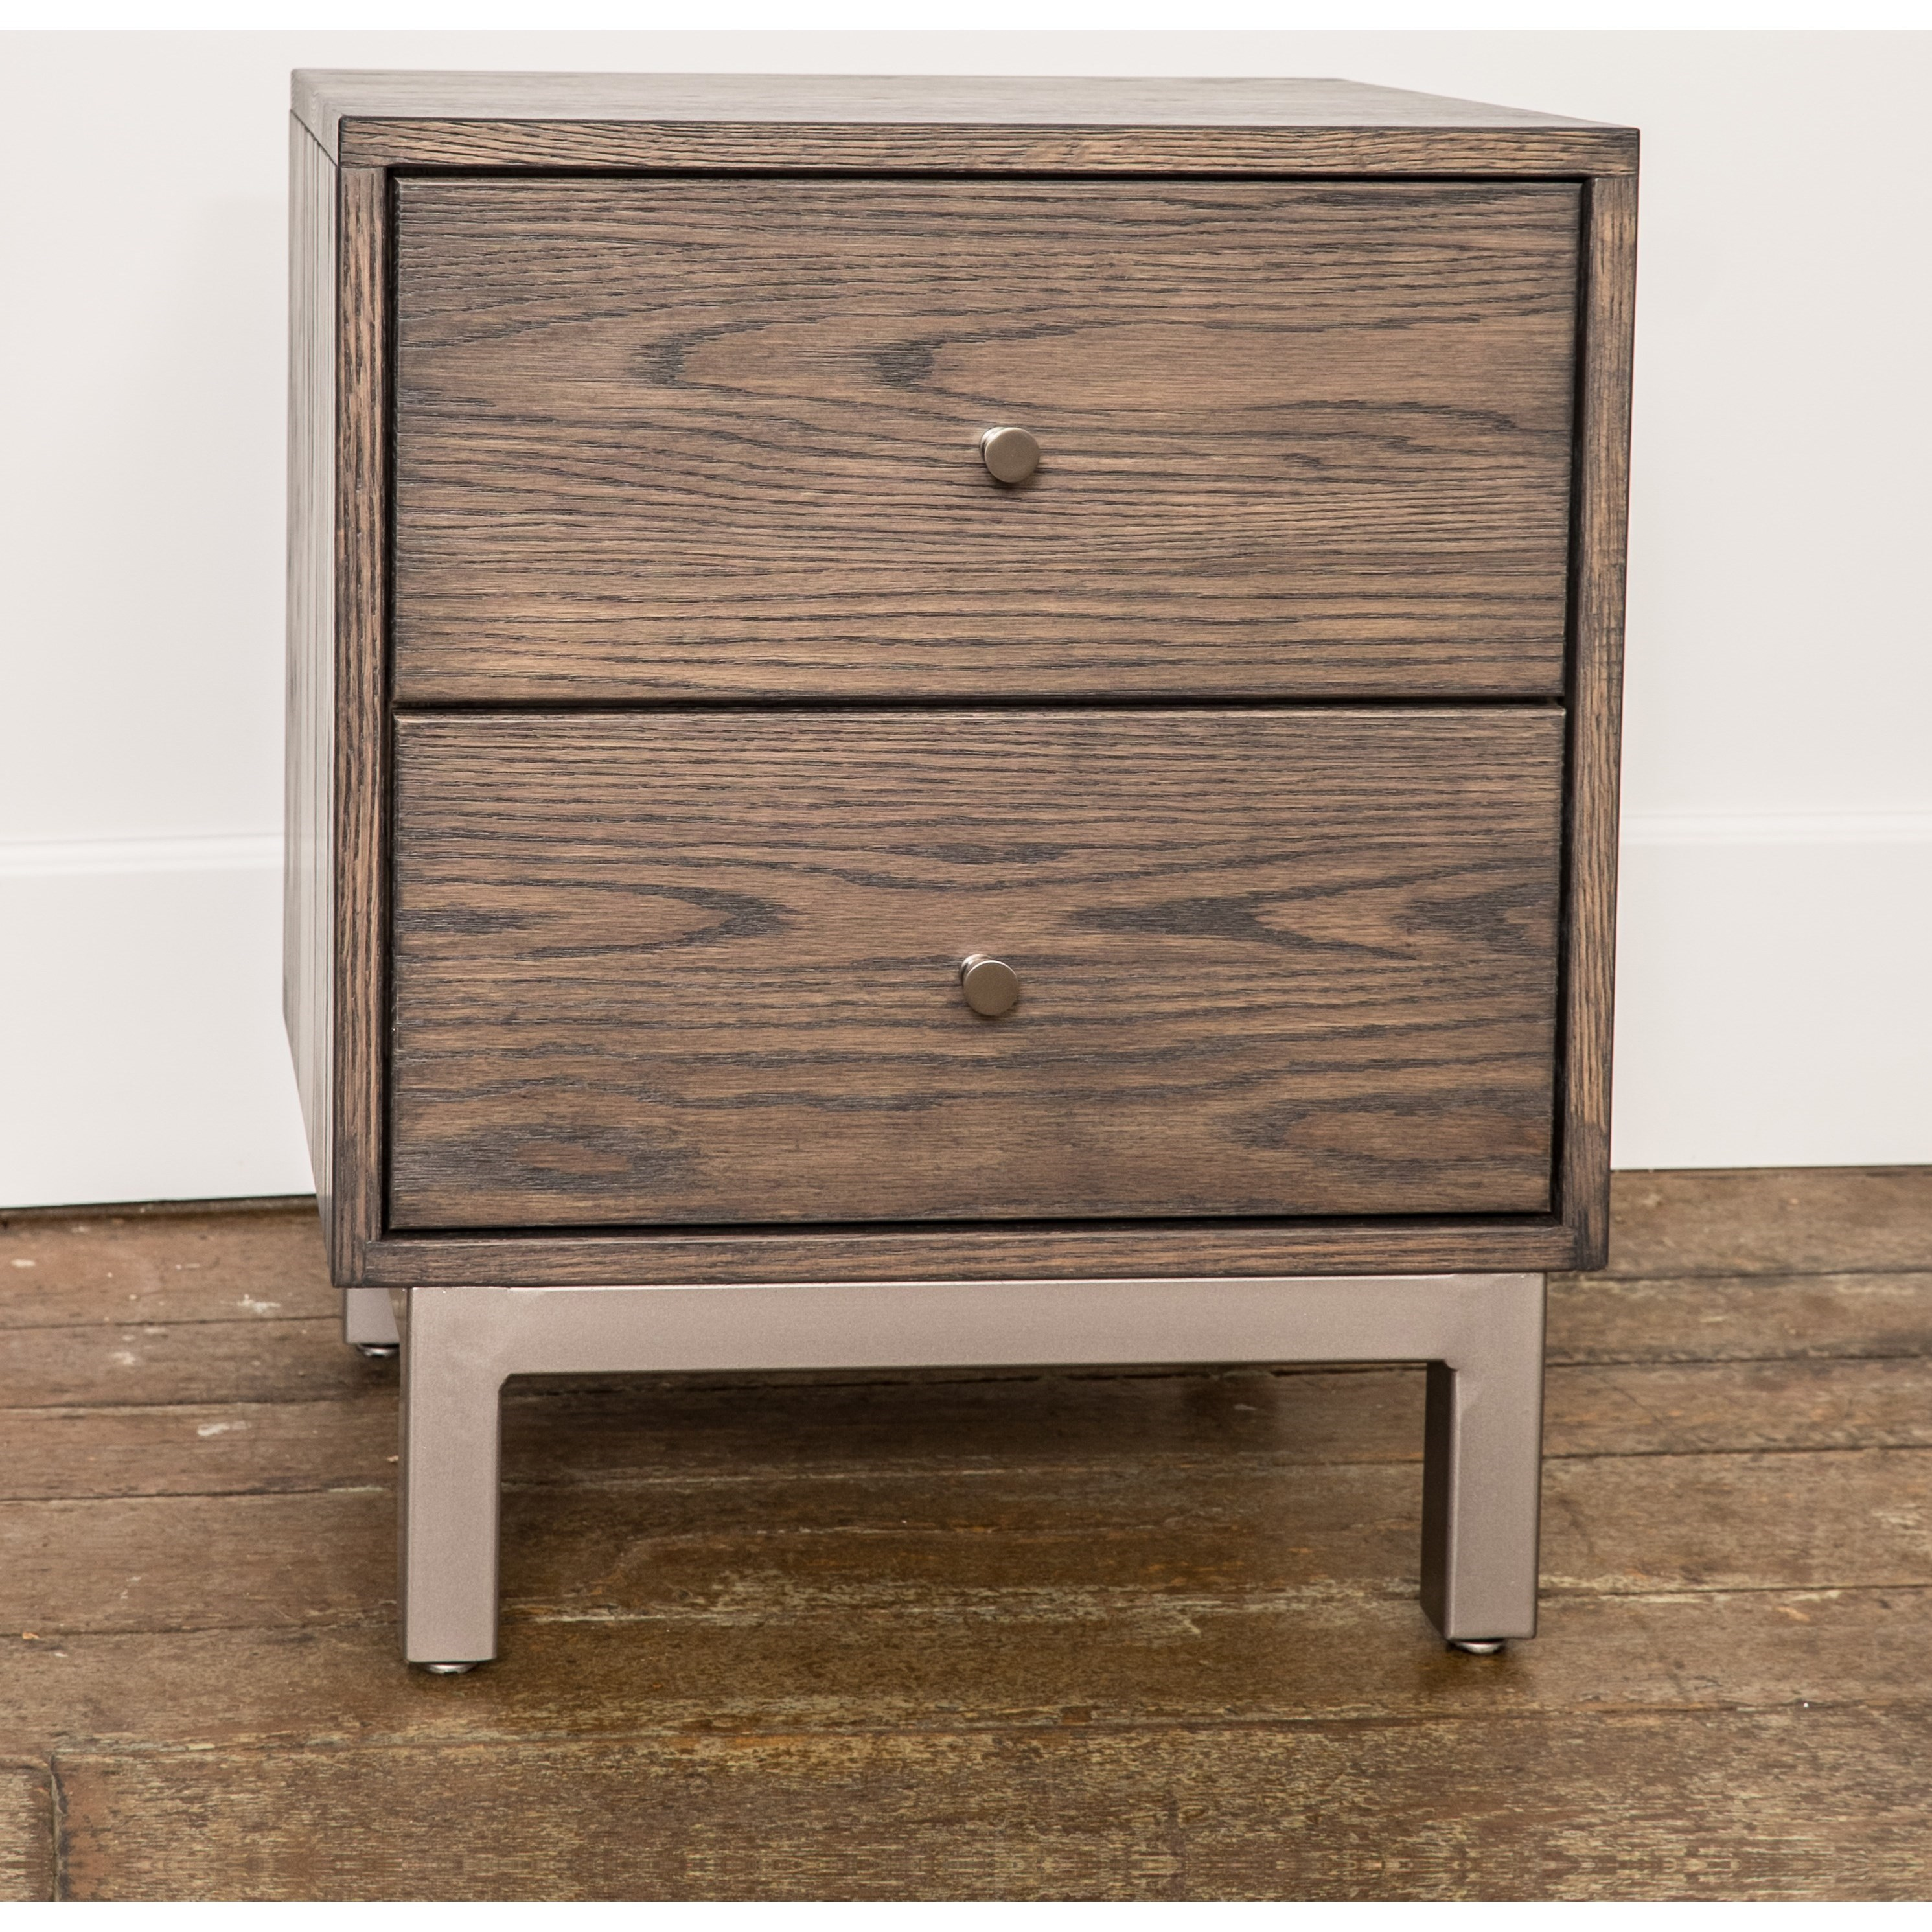 Sullivan Cove Customizable 2-Drawer Nightstand by Glenmont Furniture at Saugerties Furniture Mart